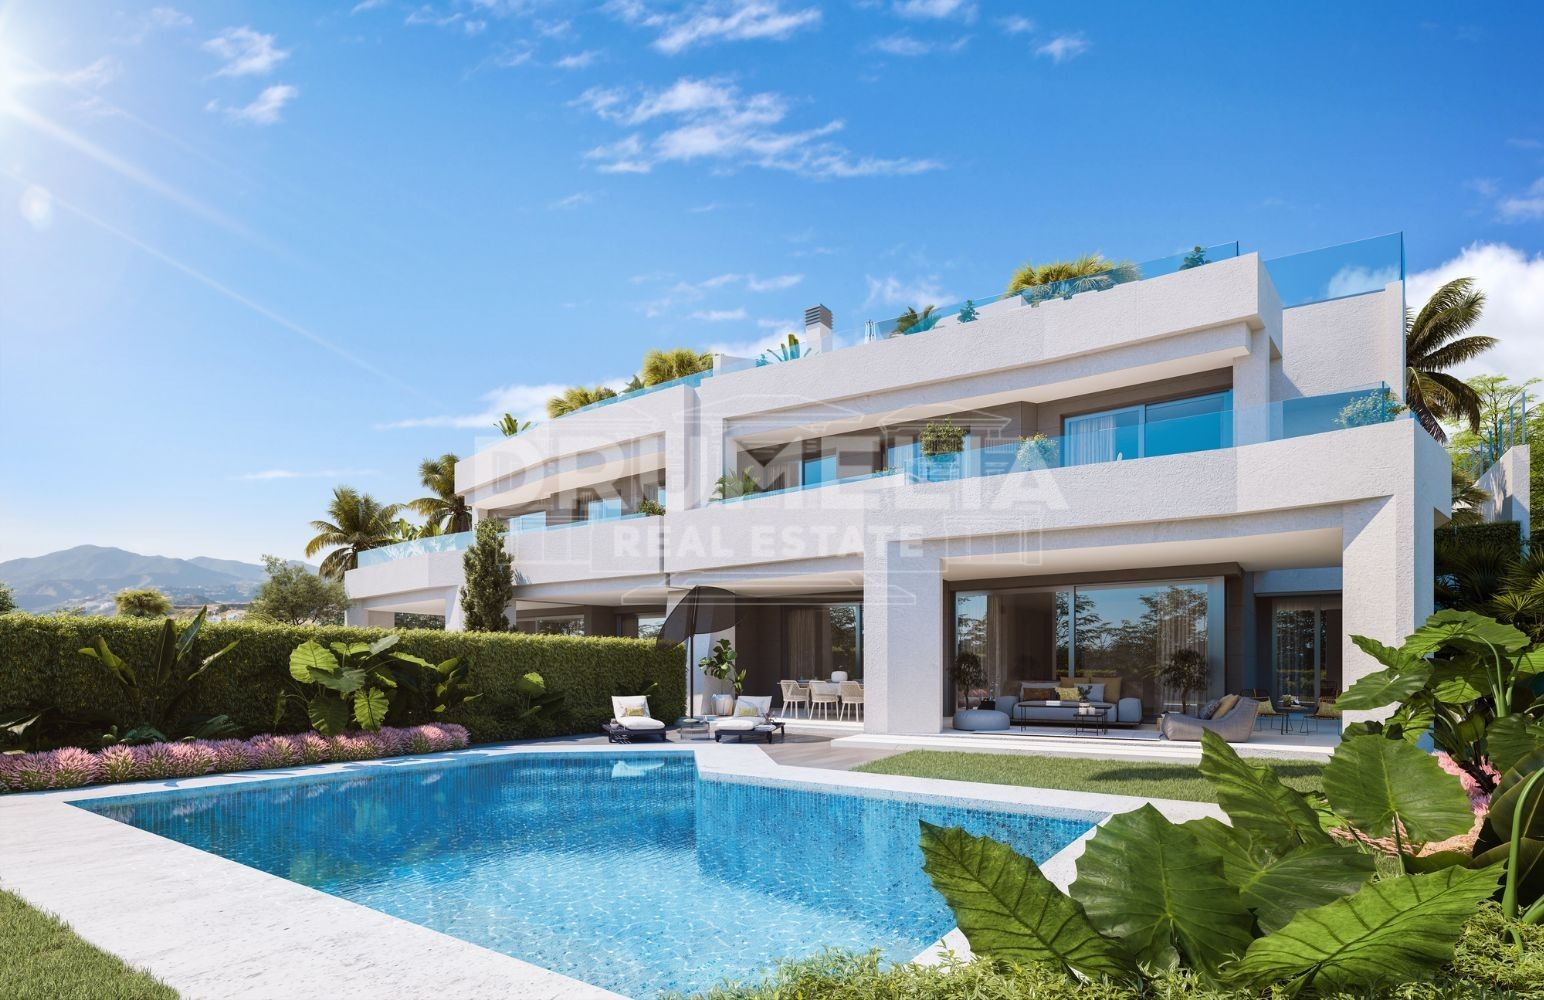 Marbella East, Magnificent Frontline Golf Modern Luxury Semi Detached Villa (Project), Santa Clara Golf, Marbella East (Marbella).